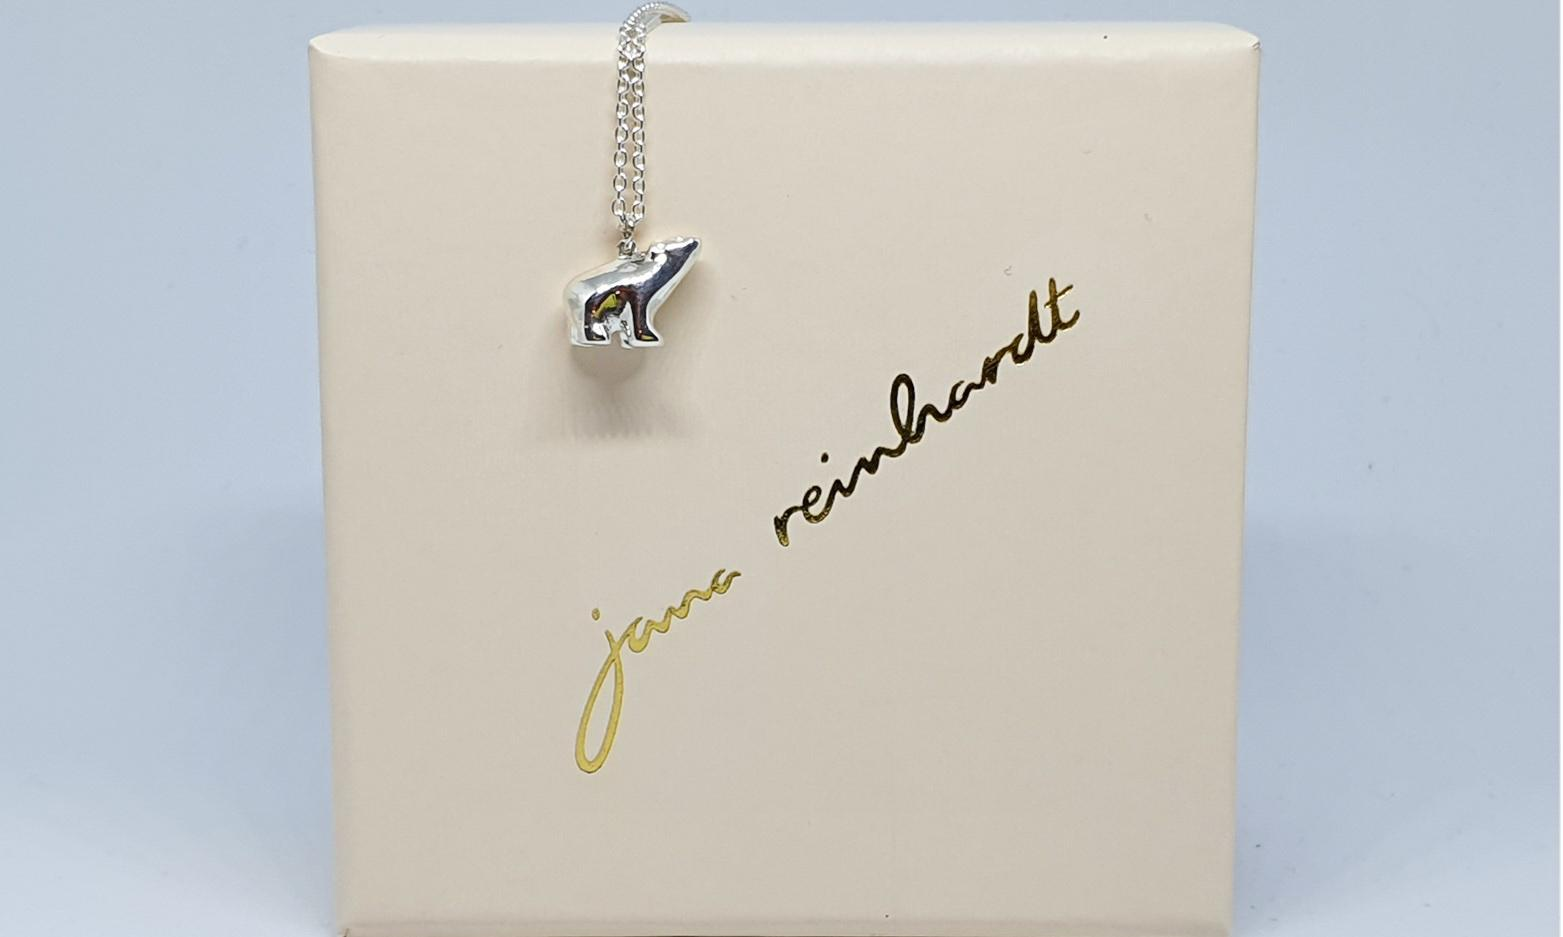 REVIEW: Jana Reinhardt Polar Bear Jewellery